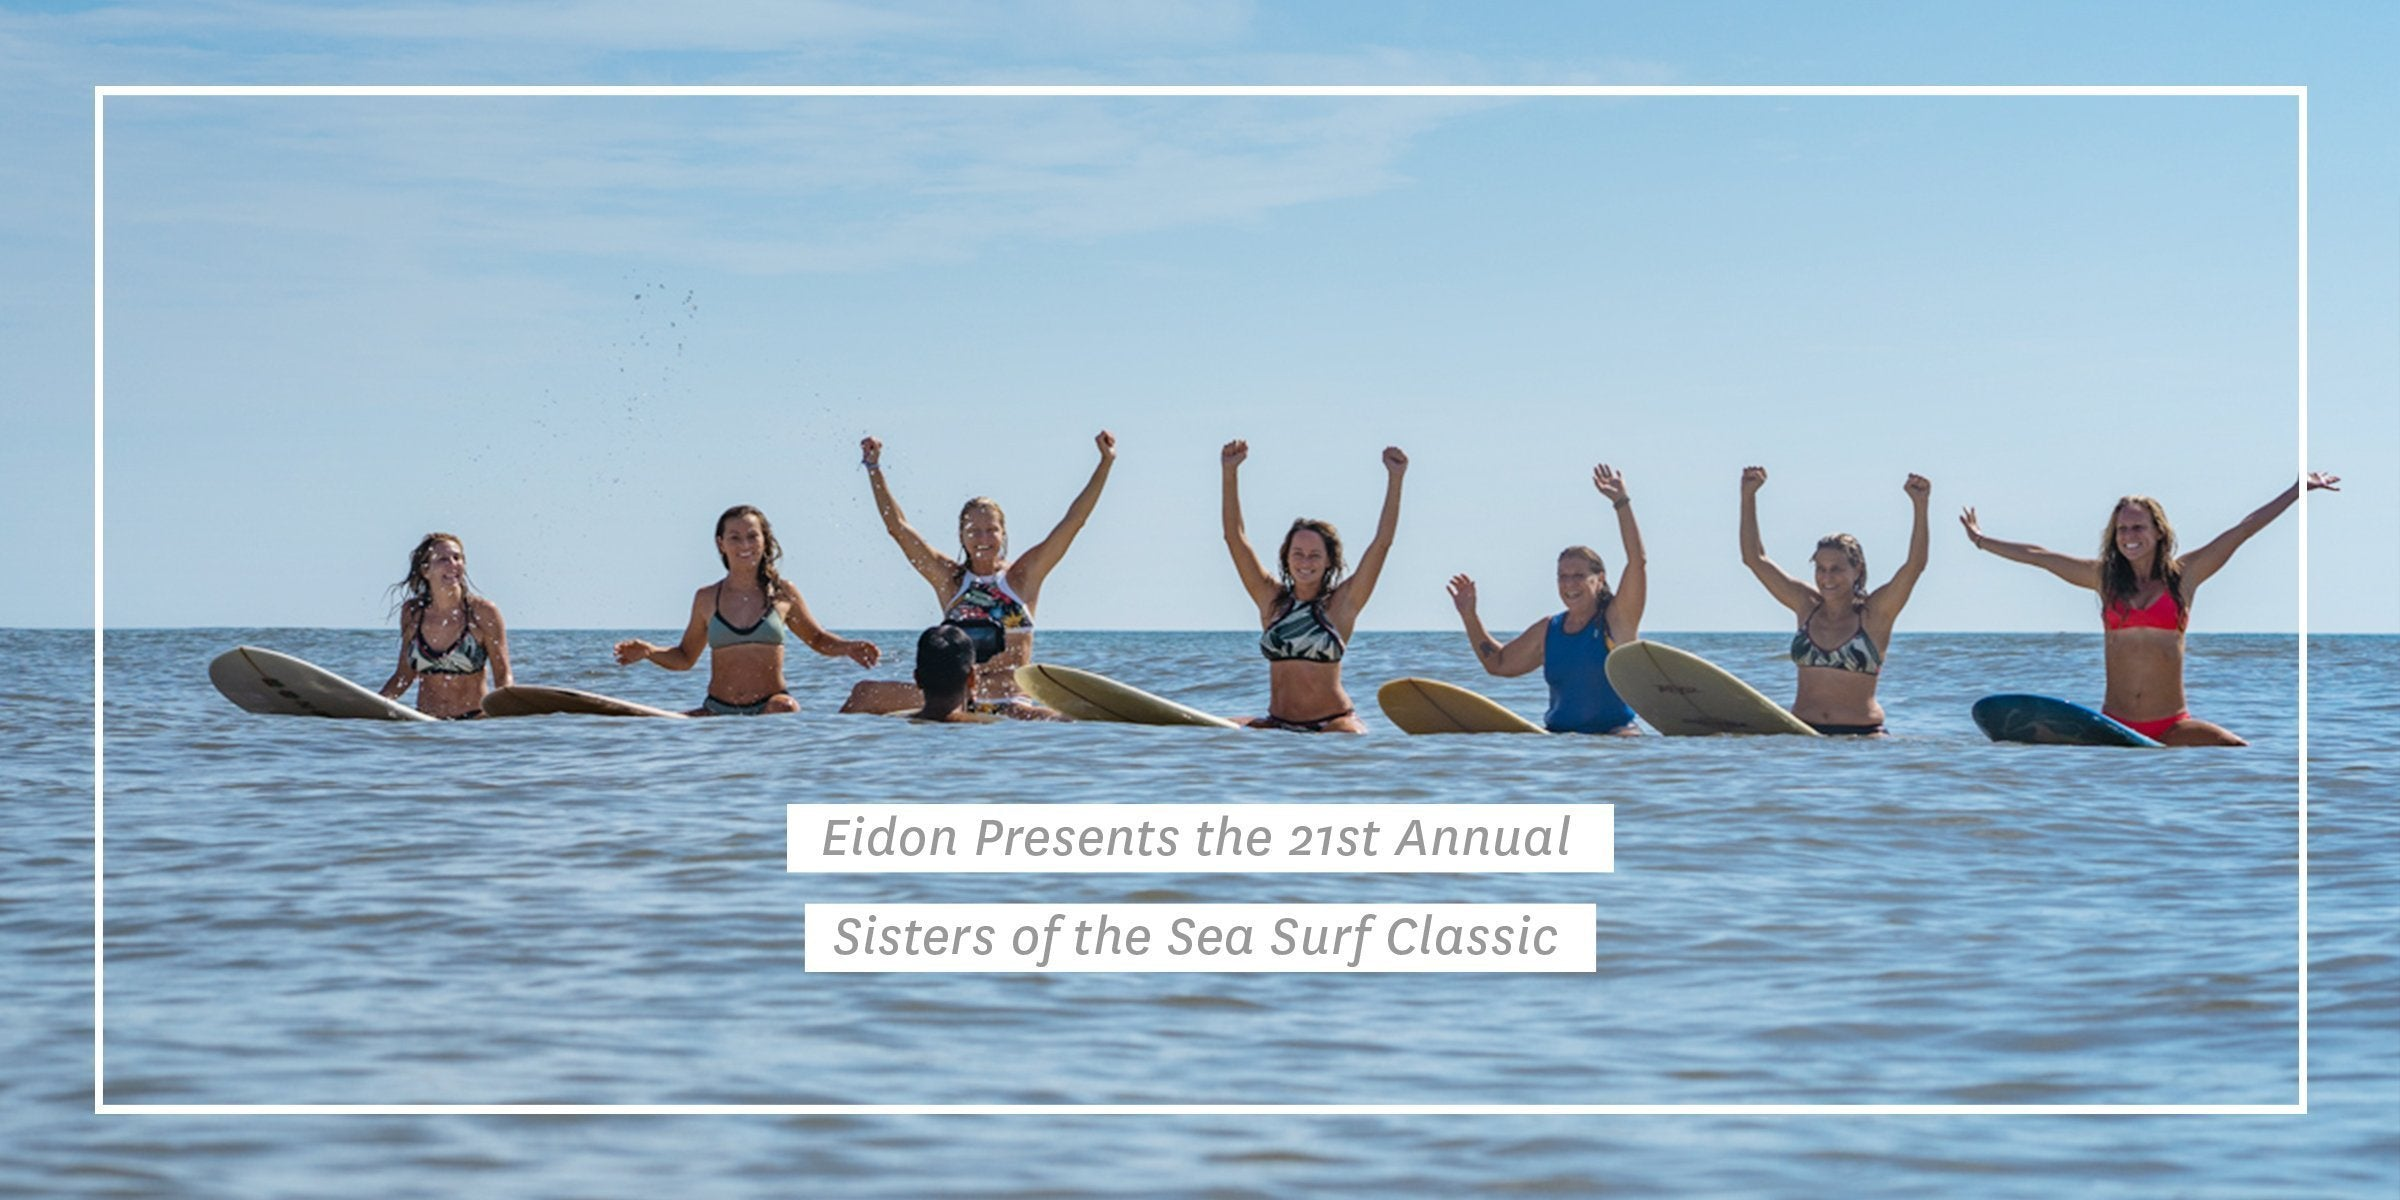 Eidon Presents the 21st Annual Sisters of the Sea Surf Classic